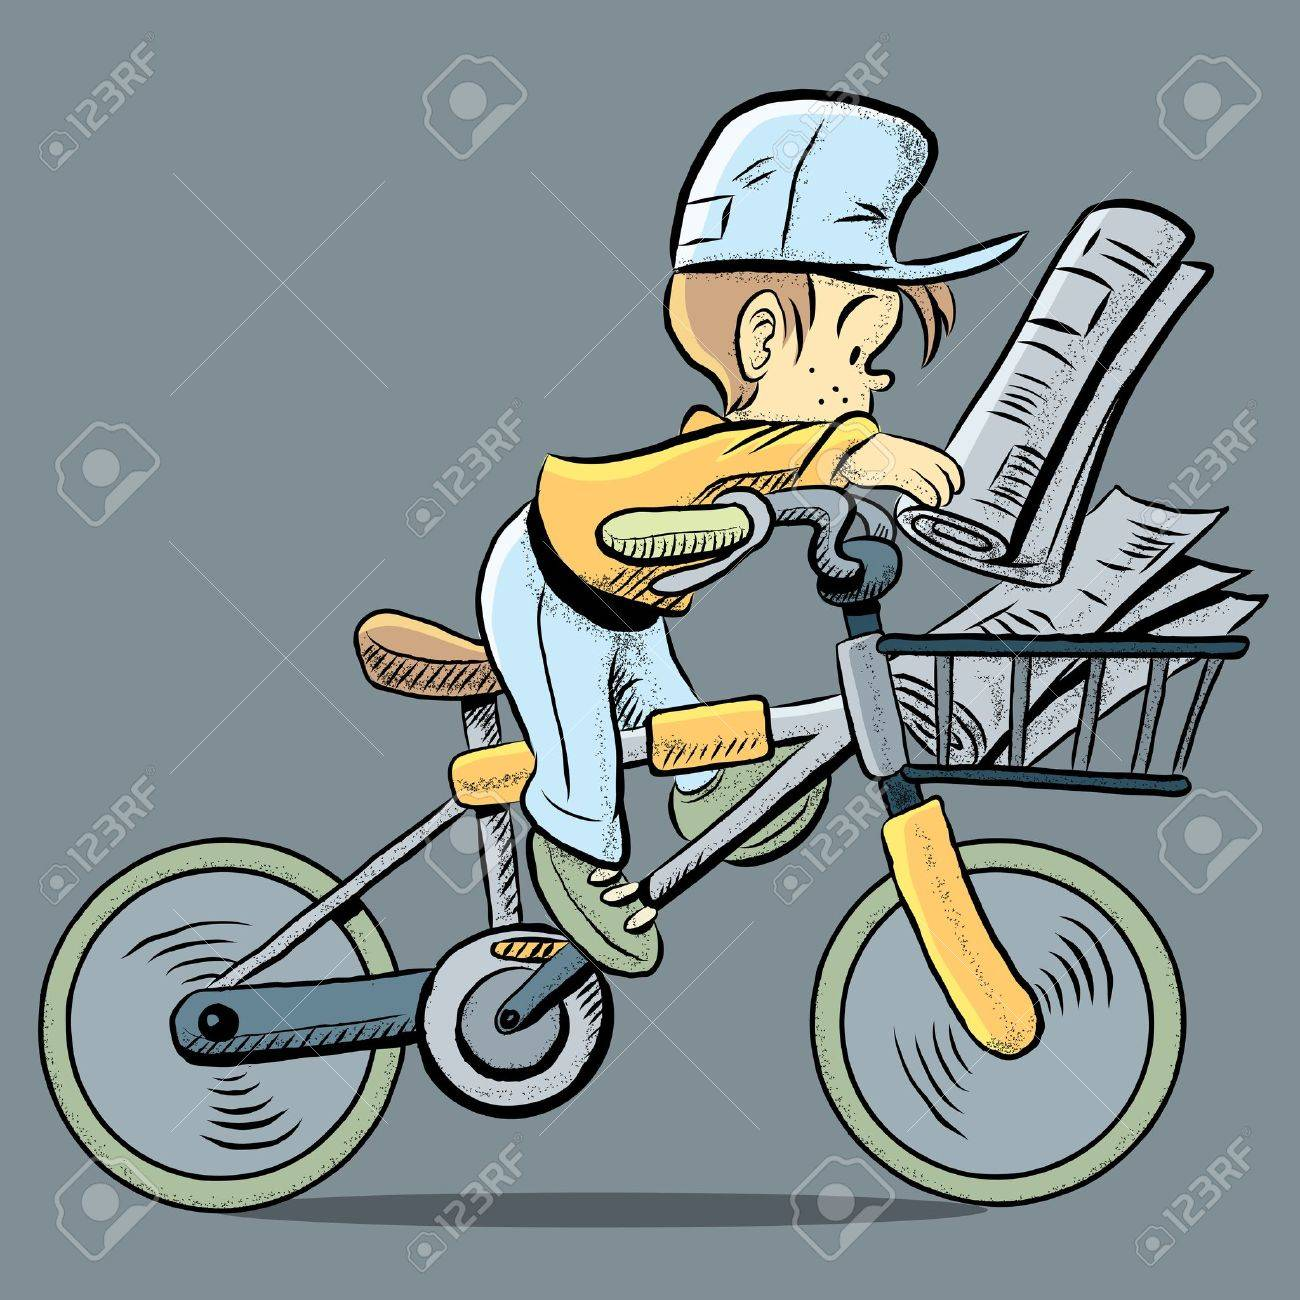 Deciding stock illustrations royalty free gograph - Selling Cute Paper Boy